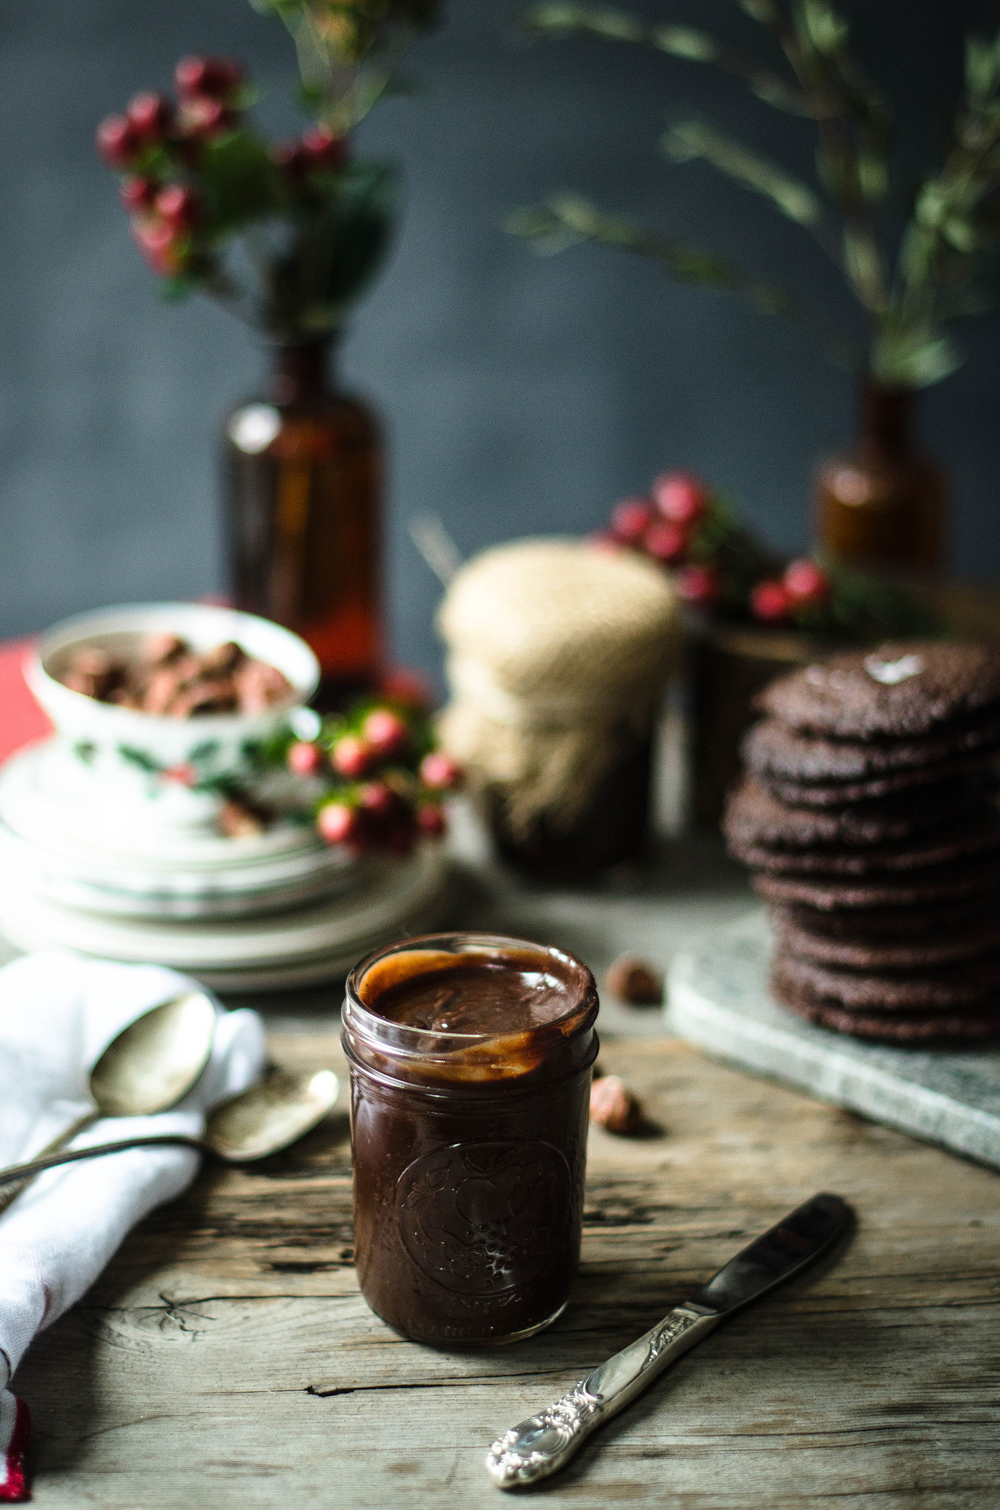 ROSE & IVY JOURNAL DARK CHOCOLATE HAZELNUT SPREAD